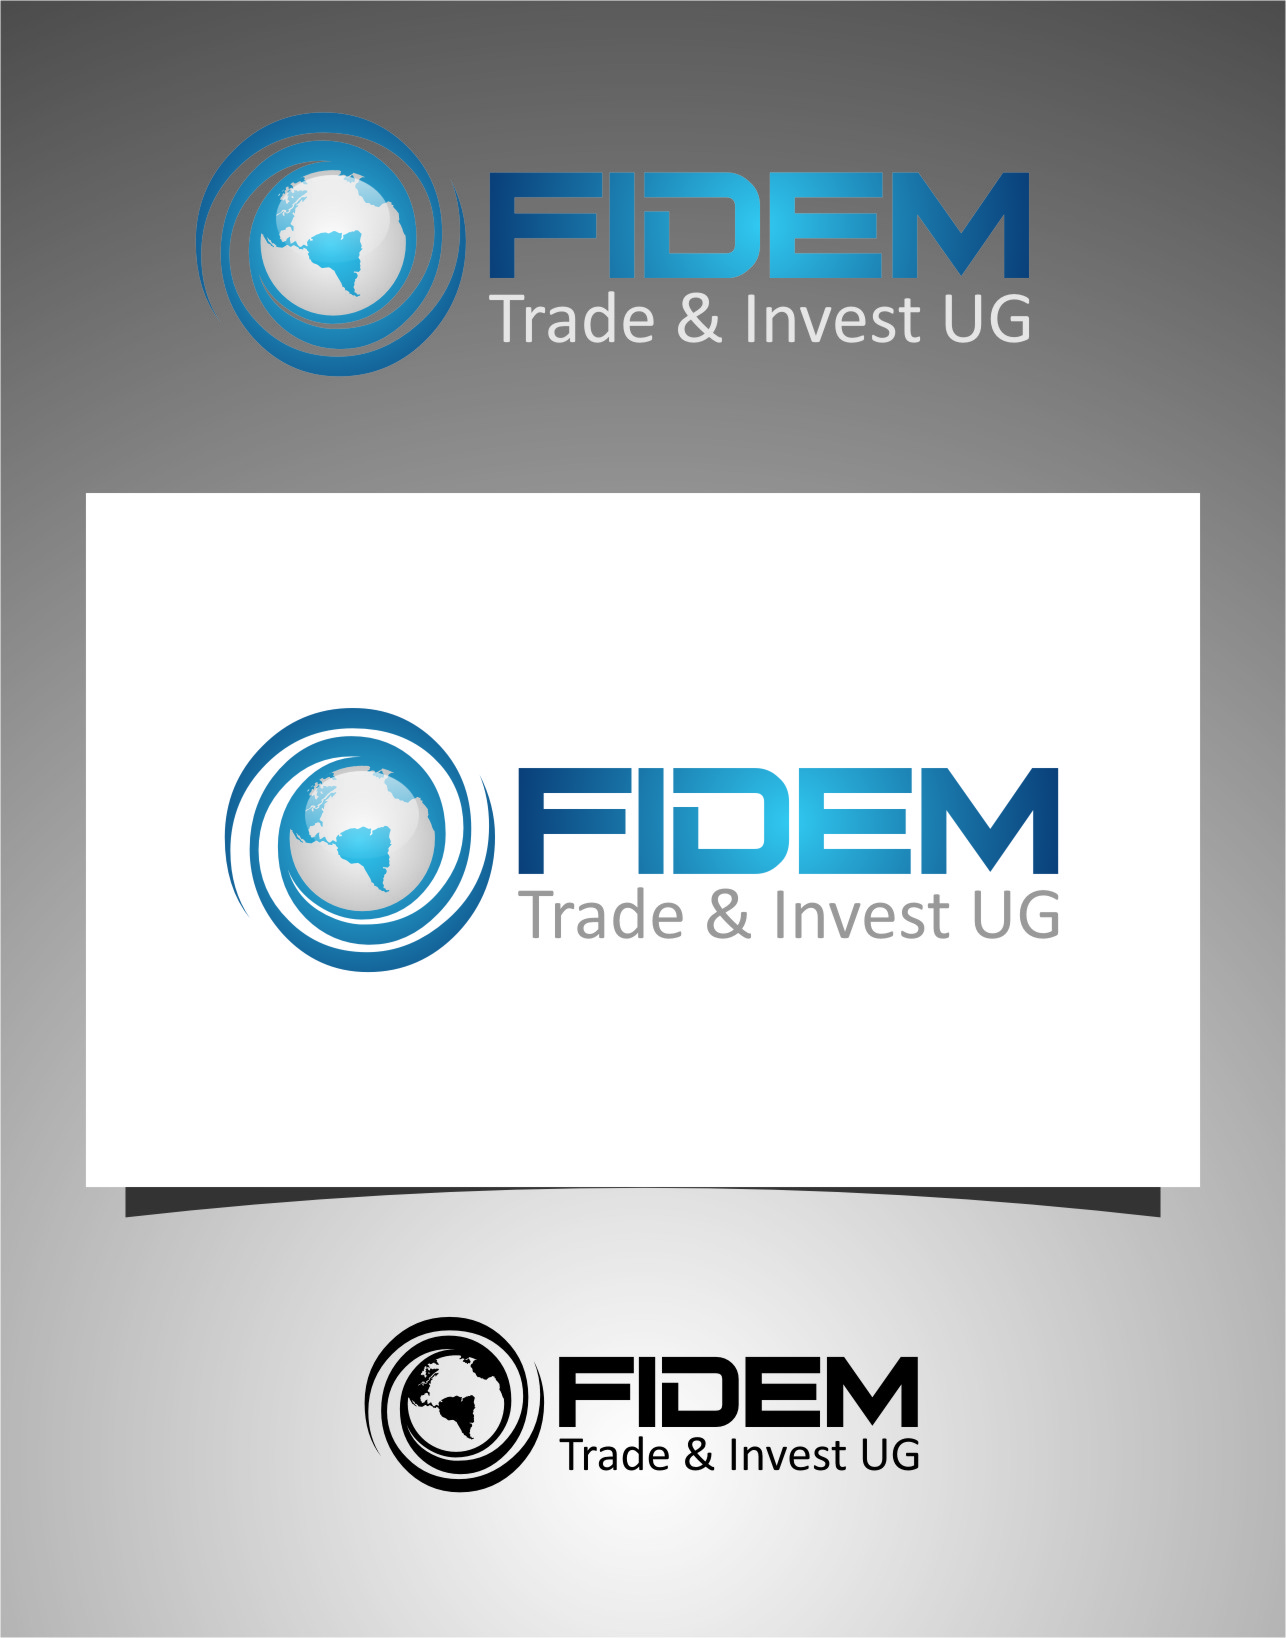 Logo Design by Ngepet_art - Entry No. 121 in the Logo Design Contest Professional Logo Design for FIDEM Trade & Invest UG.